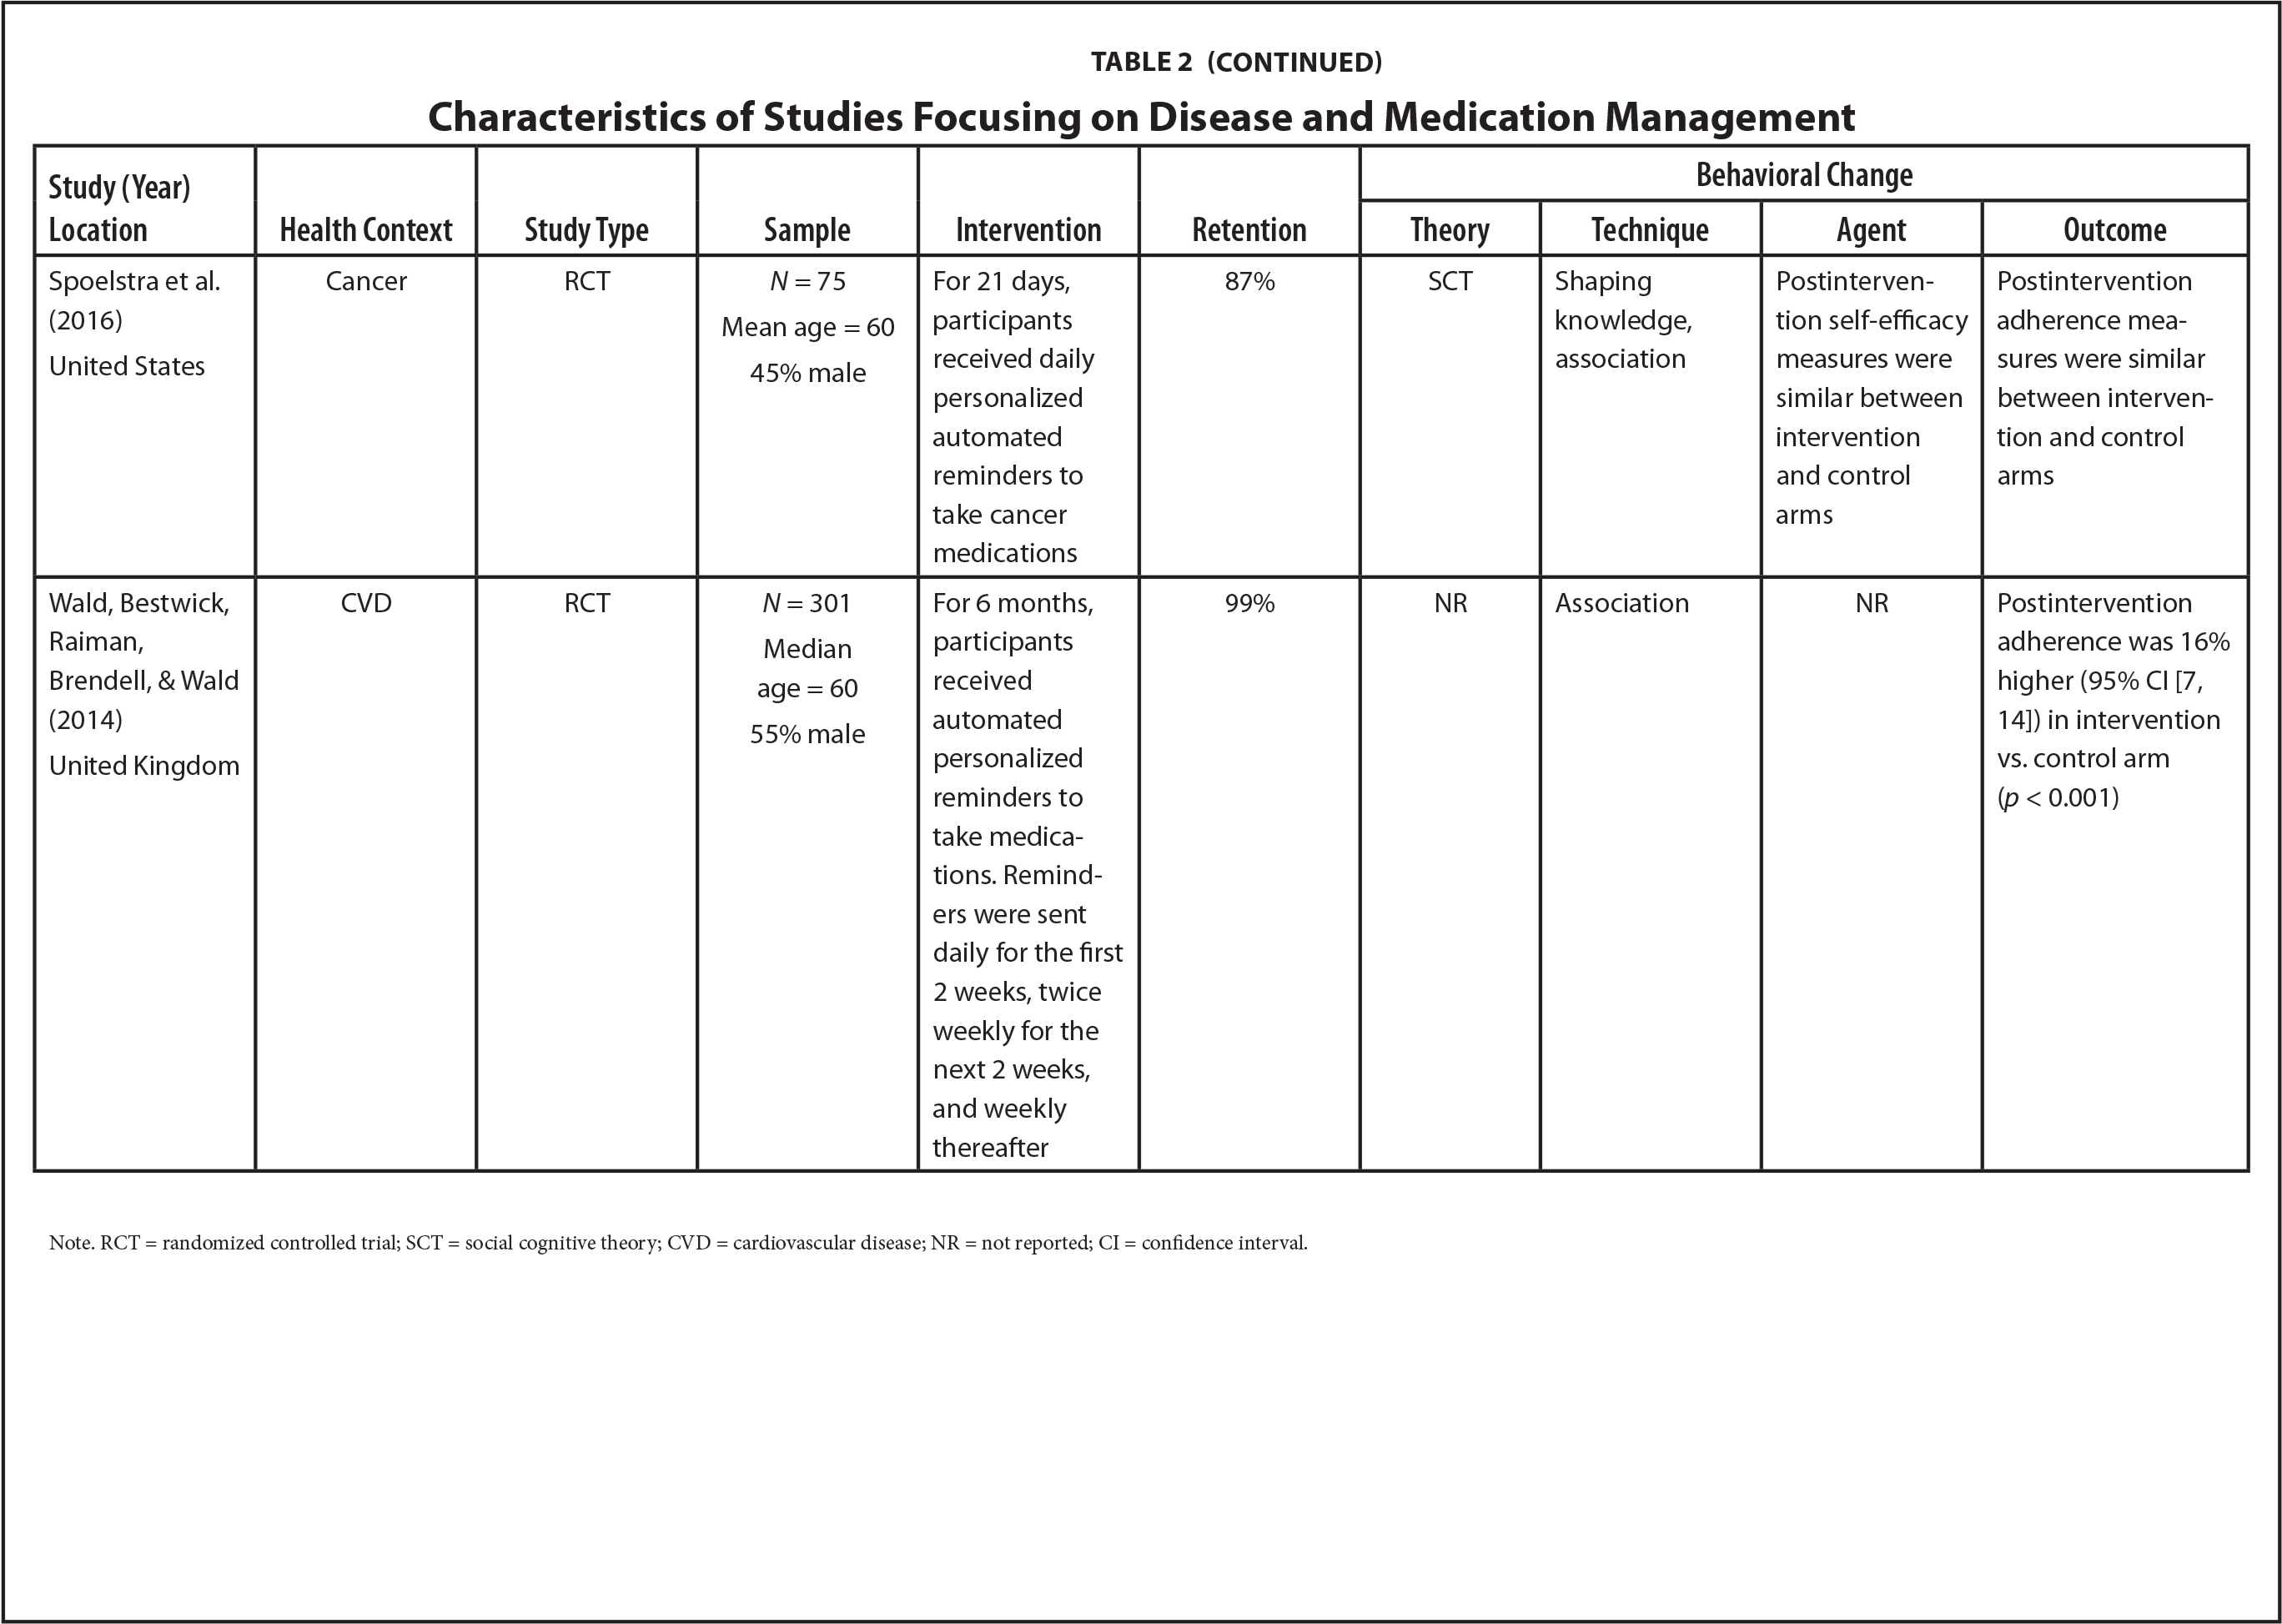 Characteristics of Studies Focusing on Disease and Medication Management